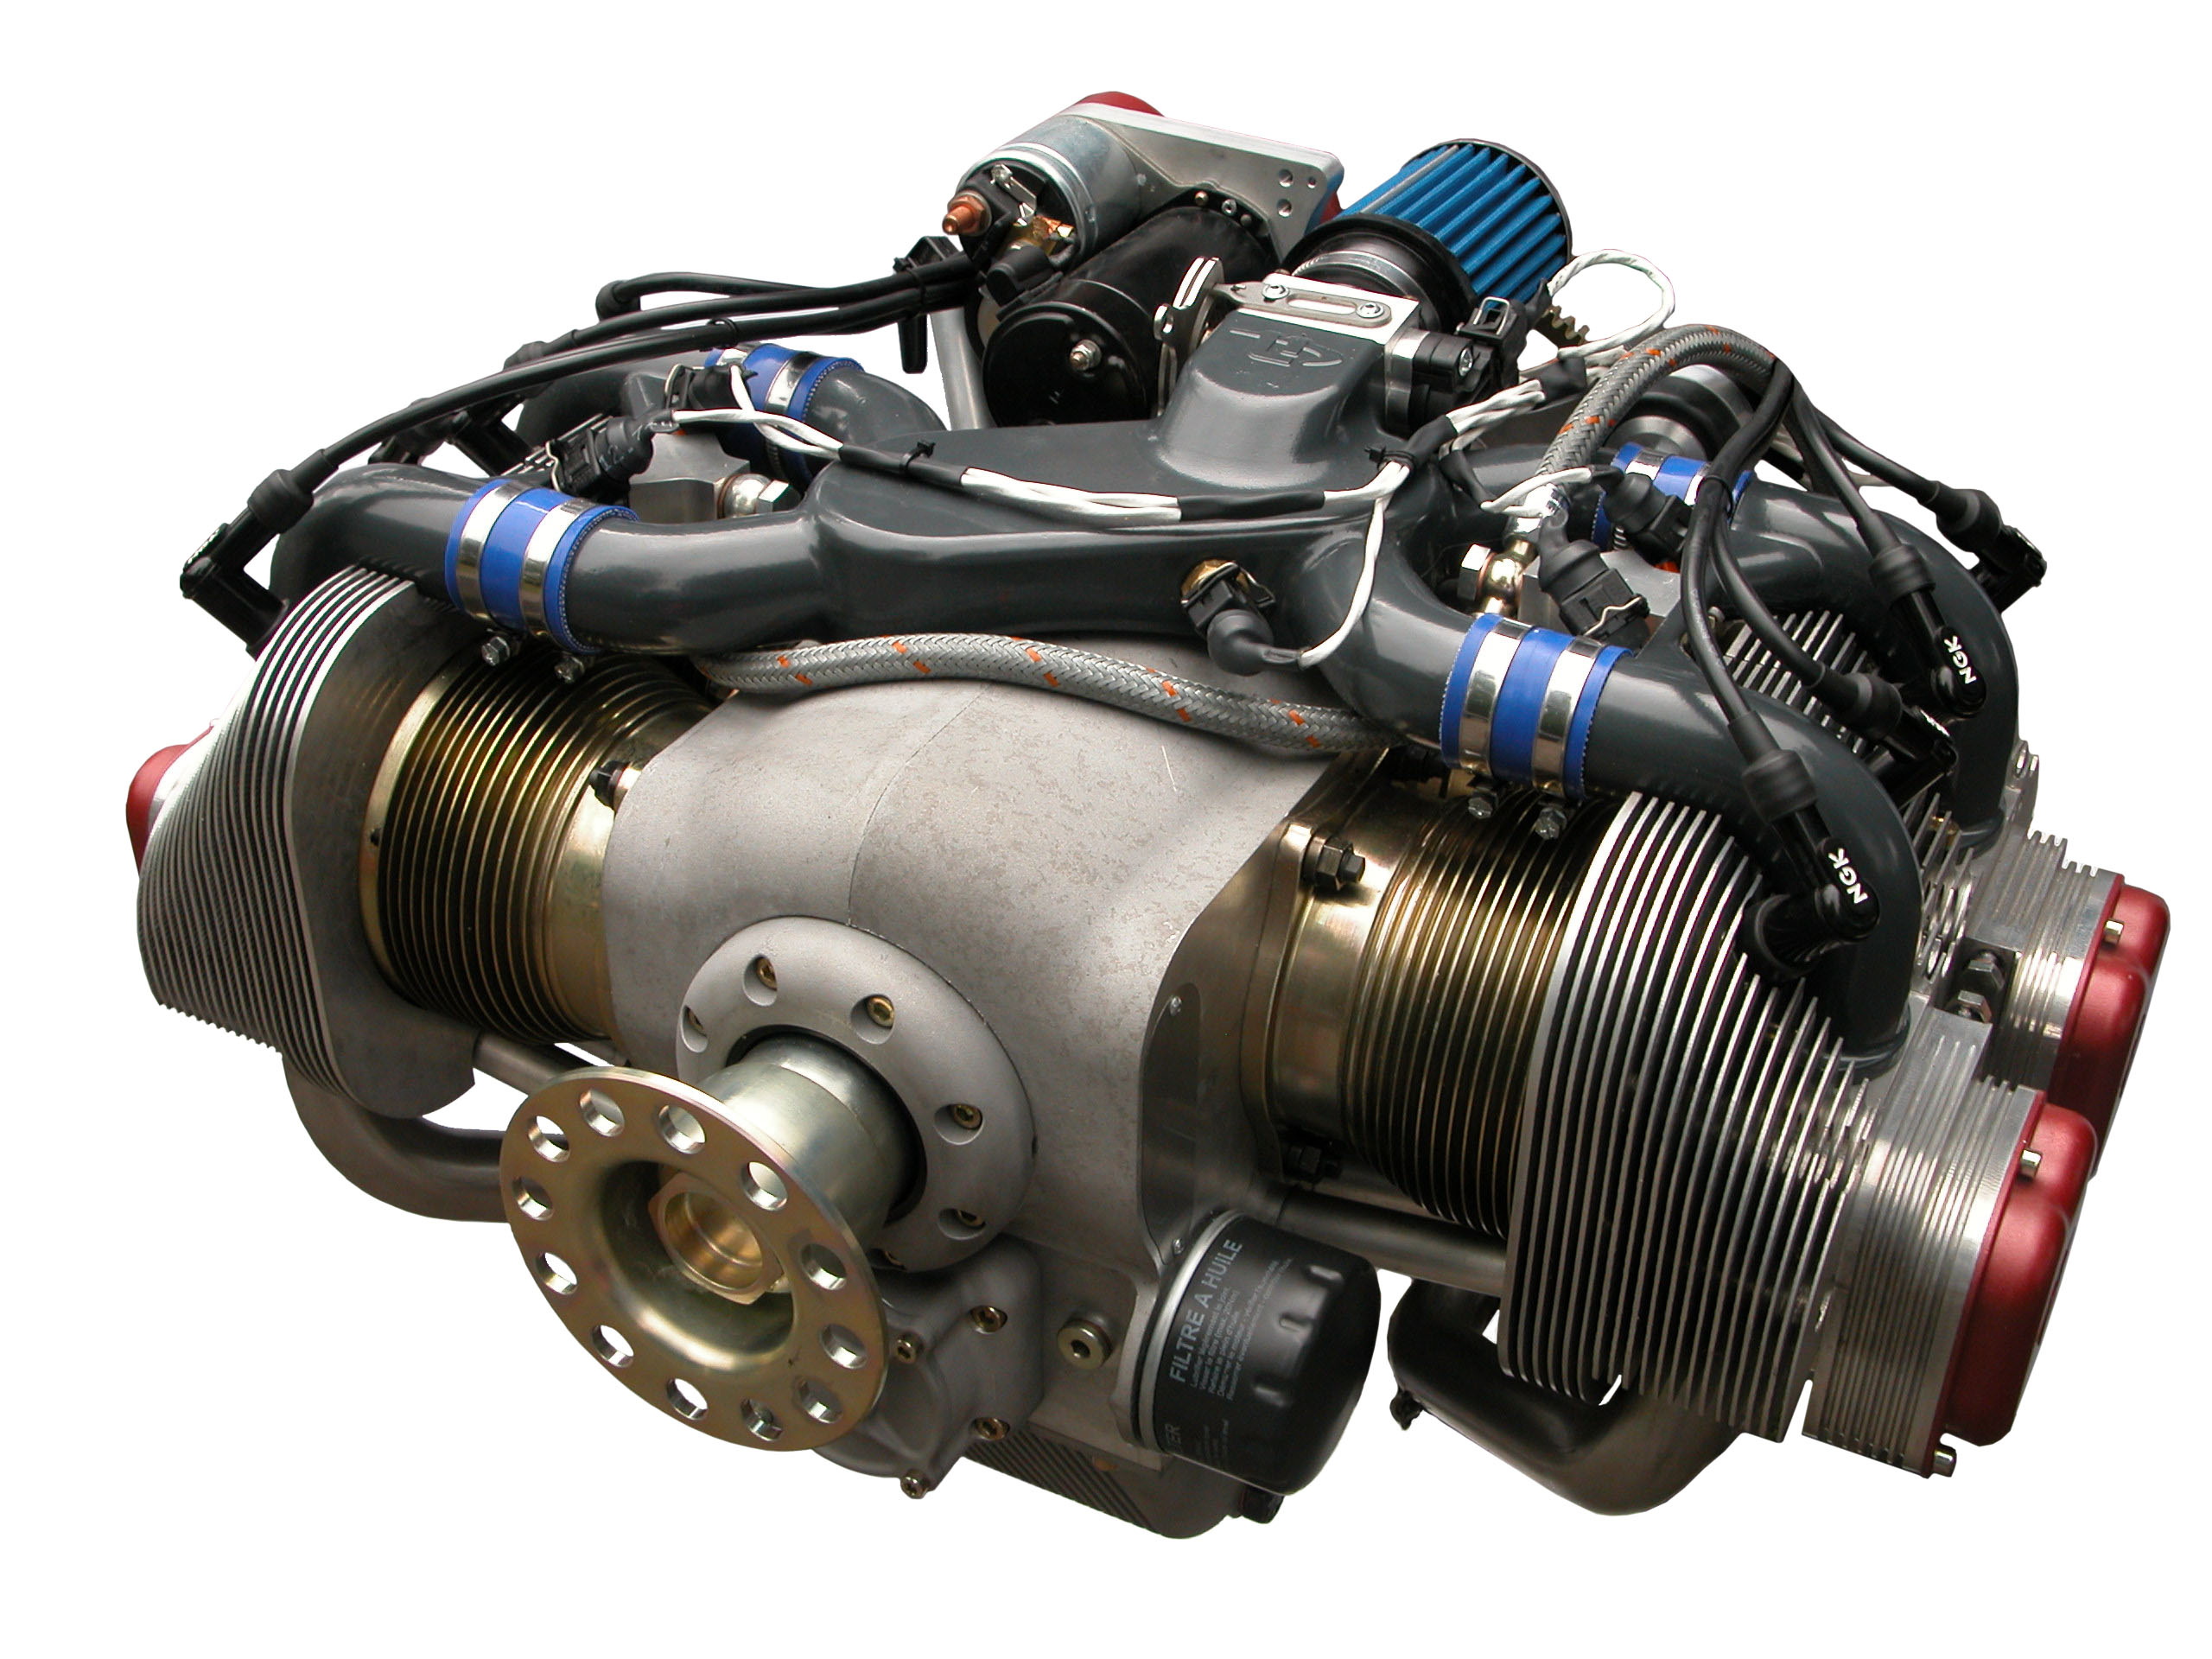 flat four engine wikipedia rh en wikipedia org Scion FR-S Subaru Boxer Engine Timing Chain